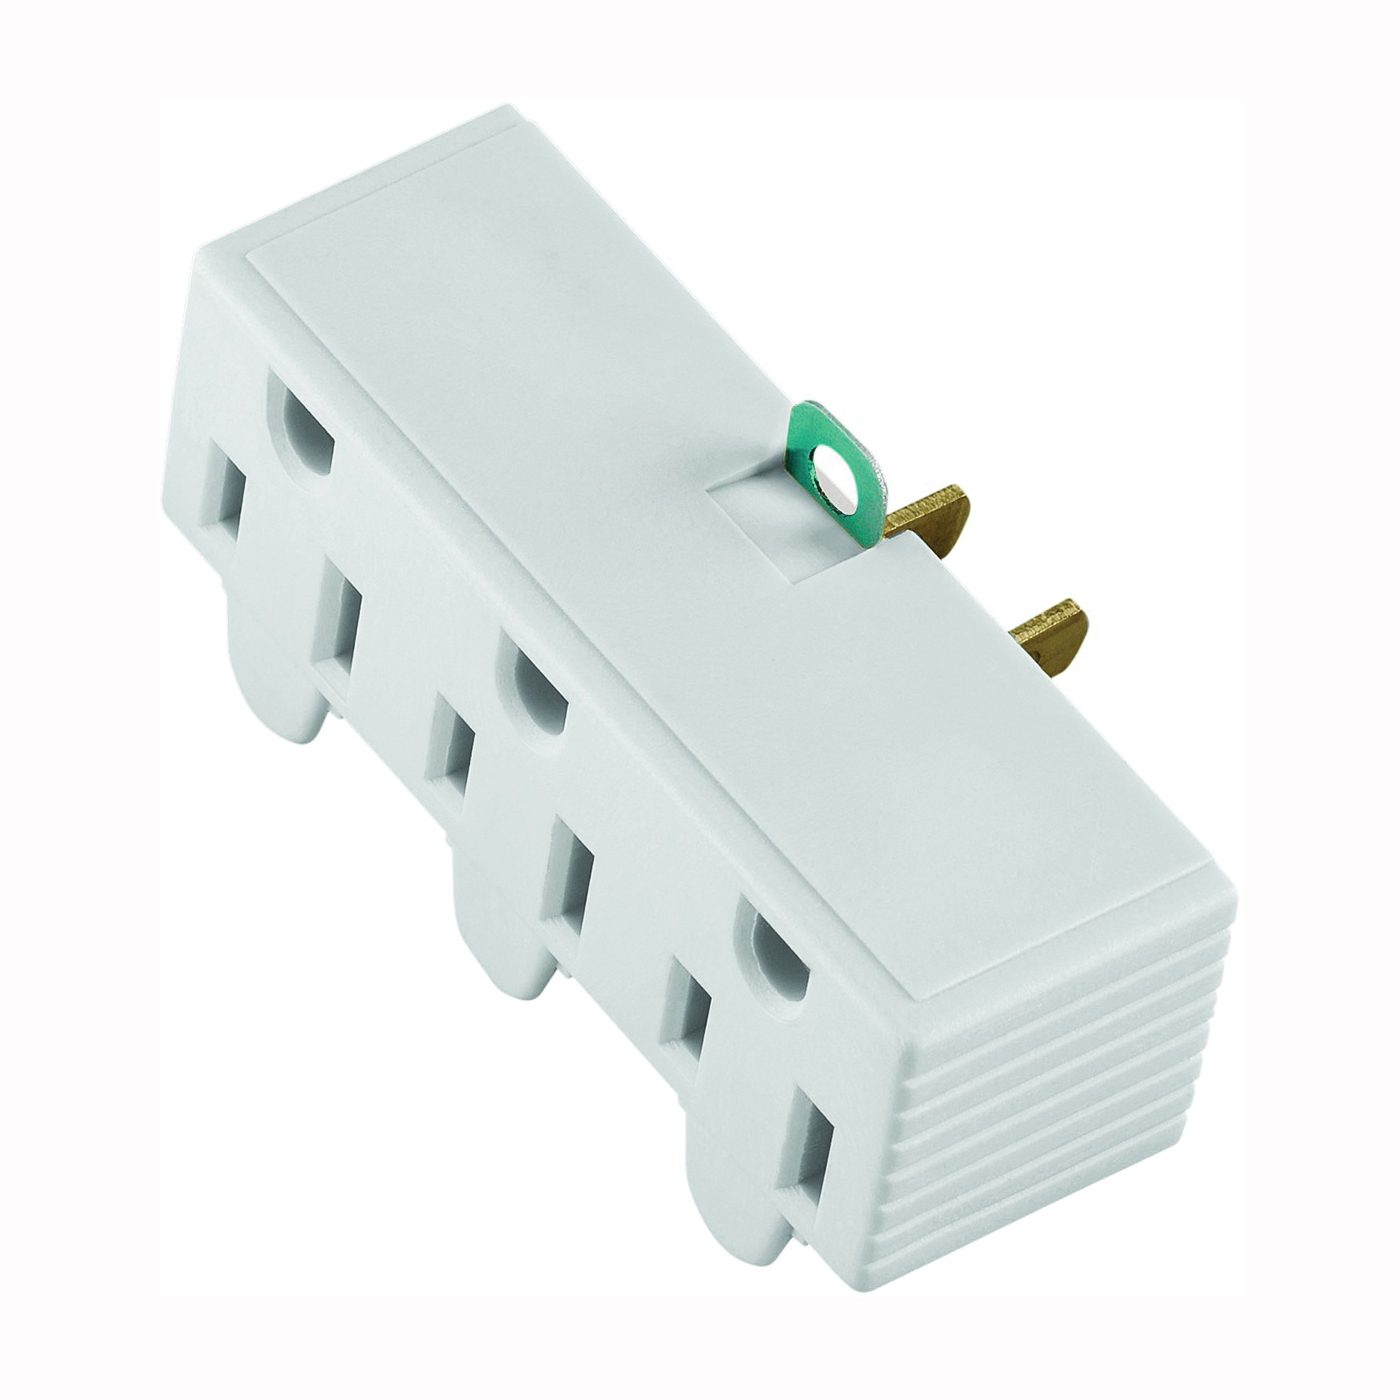 Picture of Eaton Wiring Devices BP1219W Outlet Adapter, 2-Pole, 15 A, 125 V, 3-Outlet, NEMA: 1-15 to 5-15, White